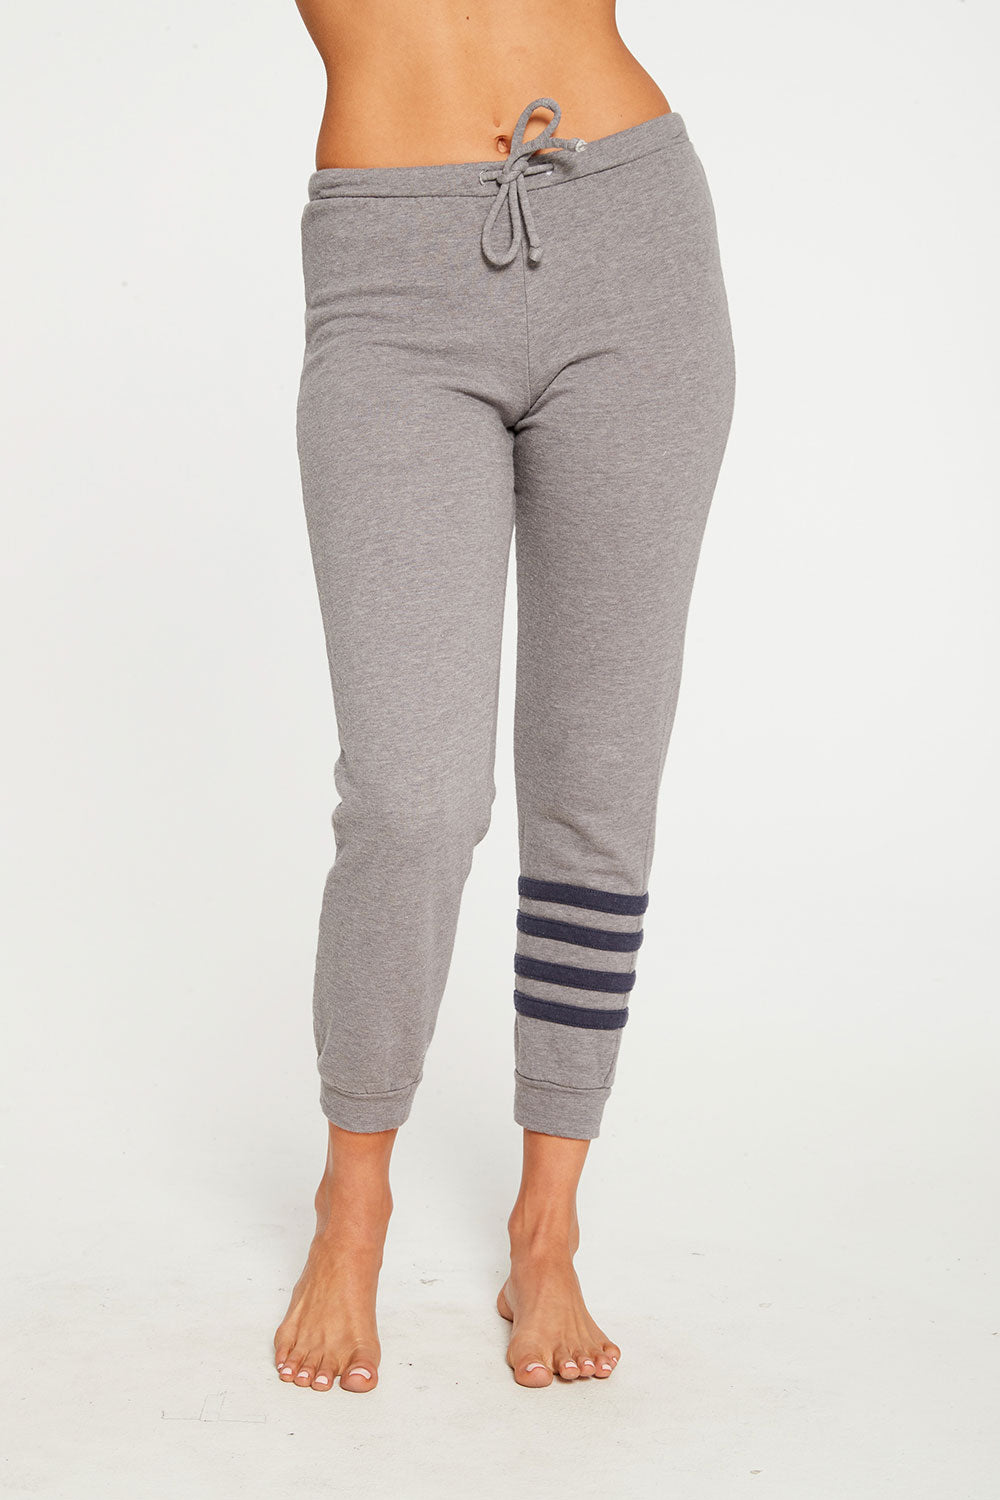 Cashmere Fleece Slouchy Jogger with Strappings WOMENS chaserbrand4.myshopify.com